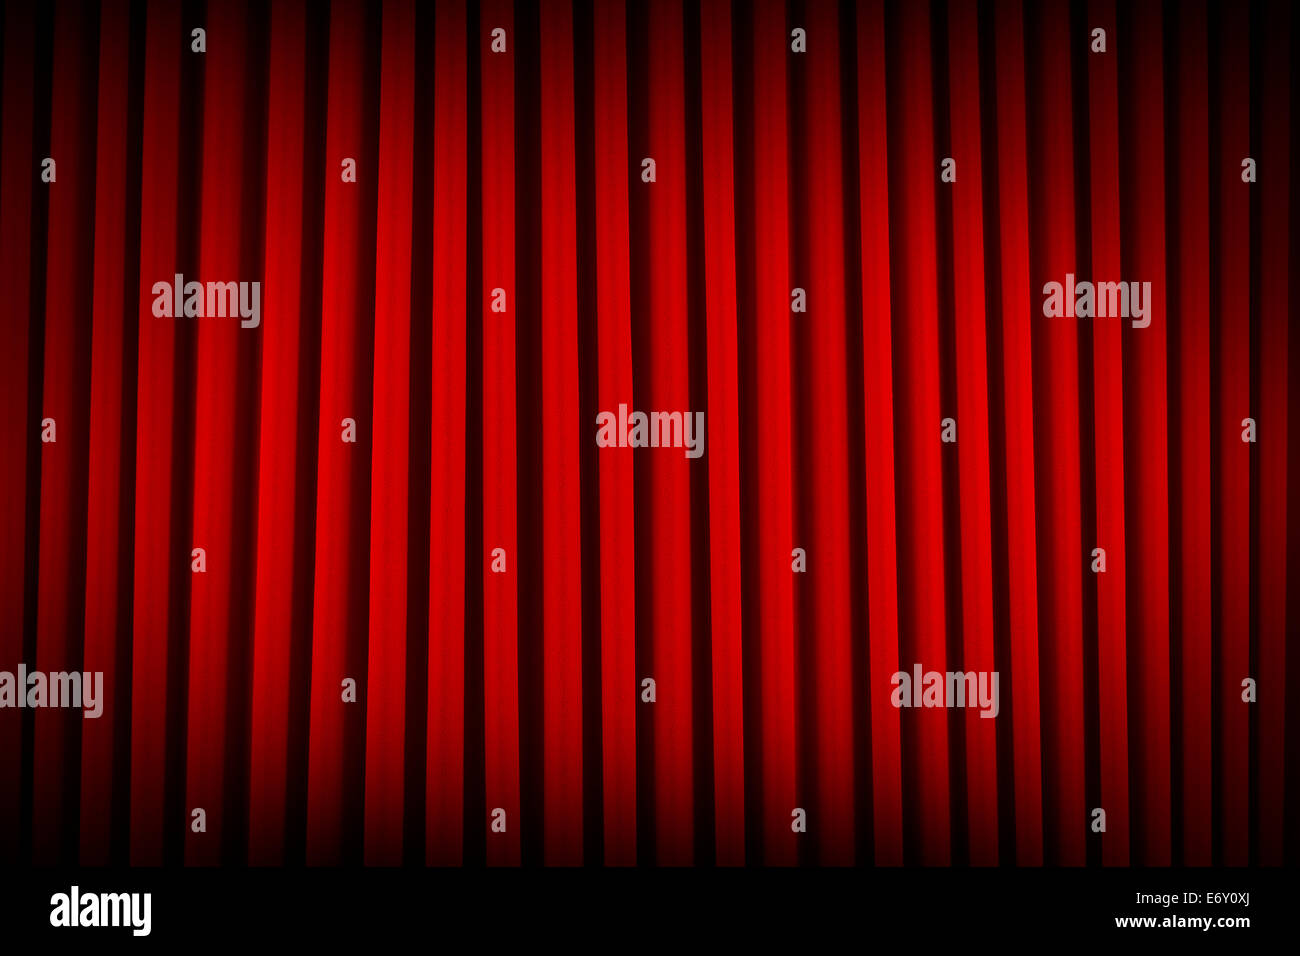 Red Velvet Movie Theater Curtains Dim Lit Background